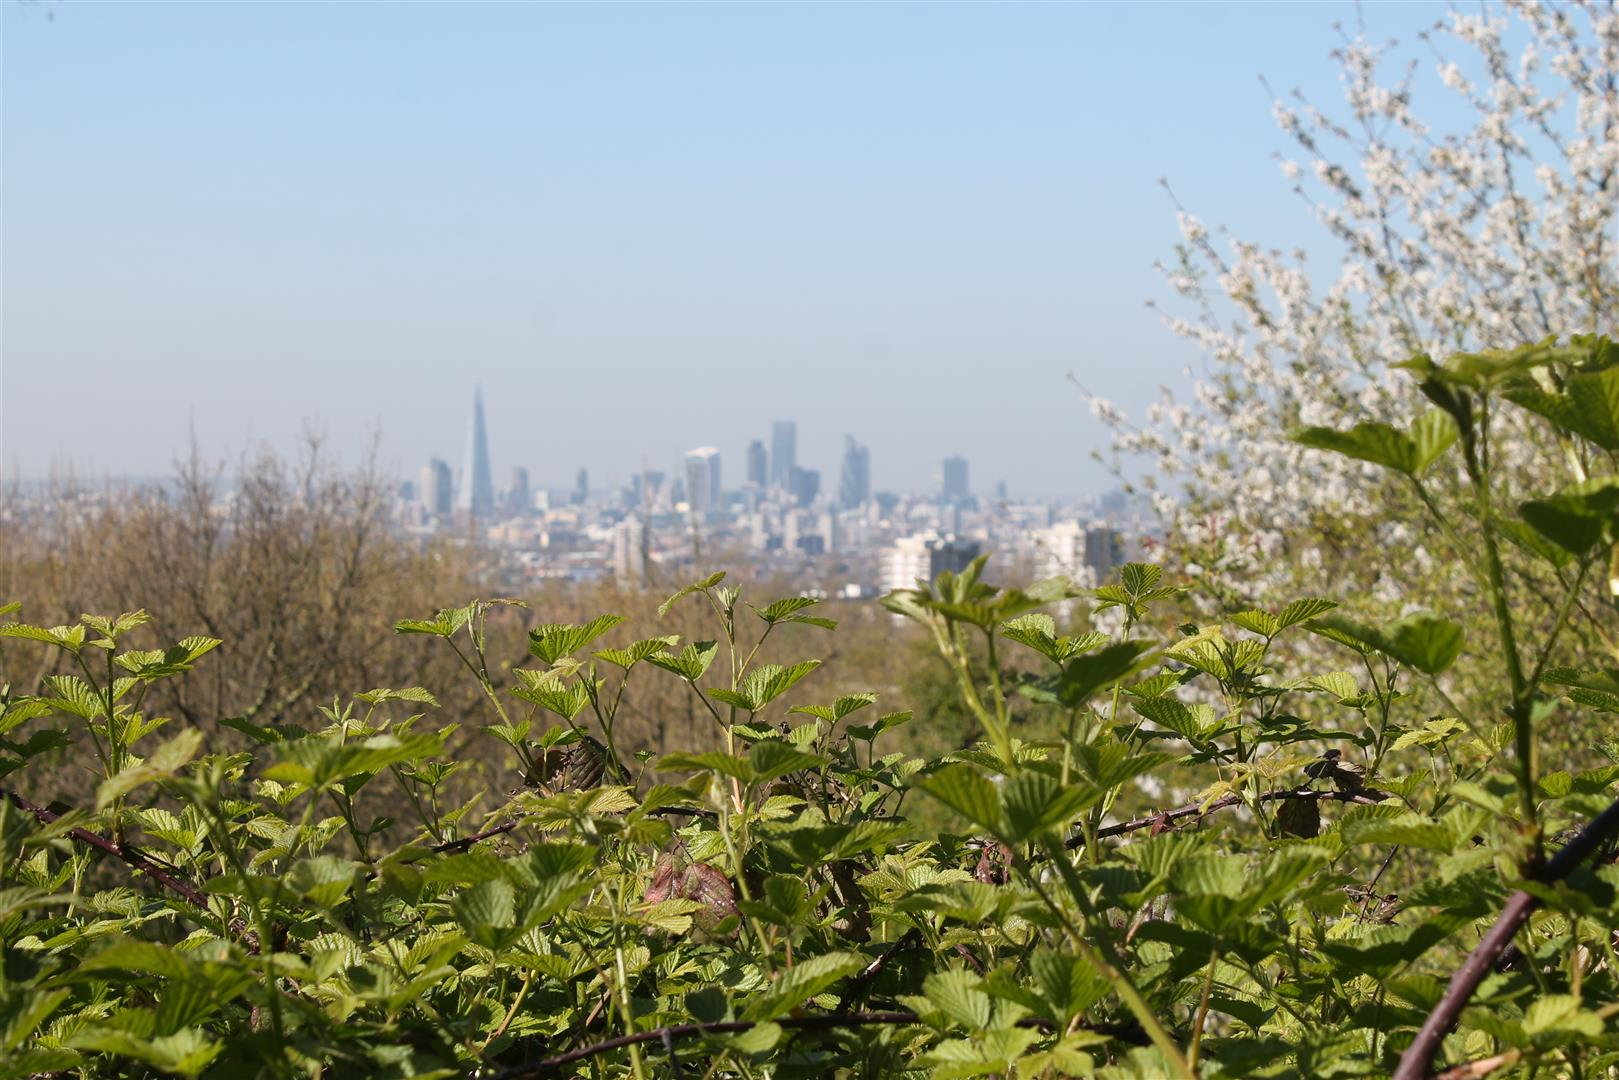 Forest Hill - Explore the wondrous Horniman's Museum, hidden nature reserves, quirky galleries and artist studios